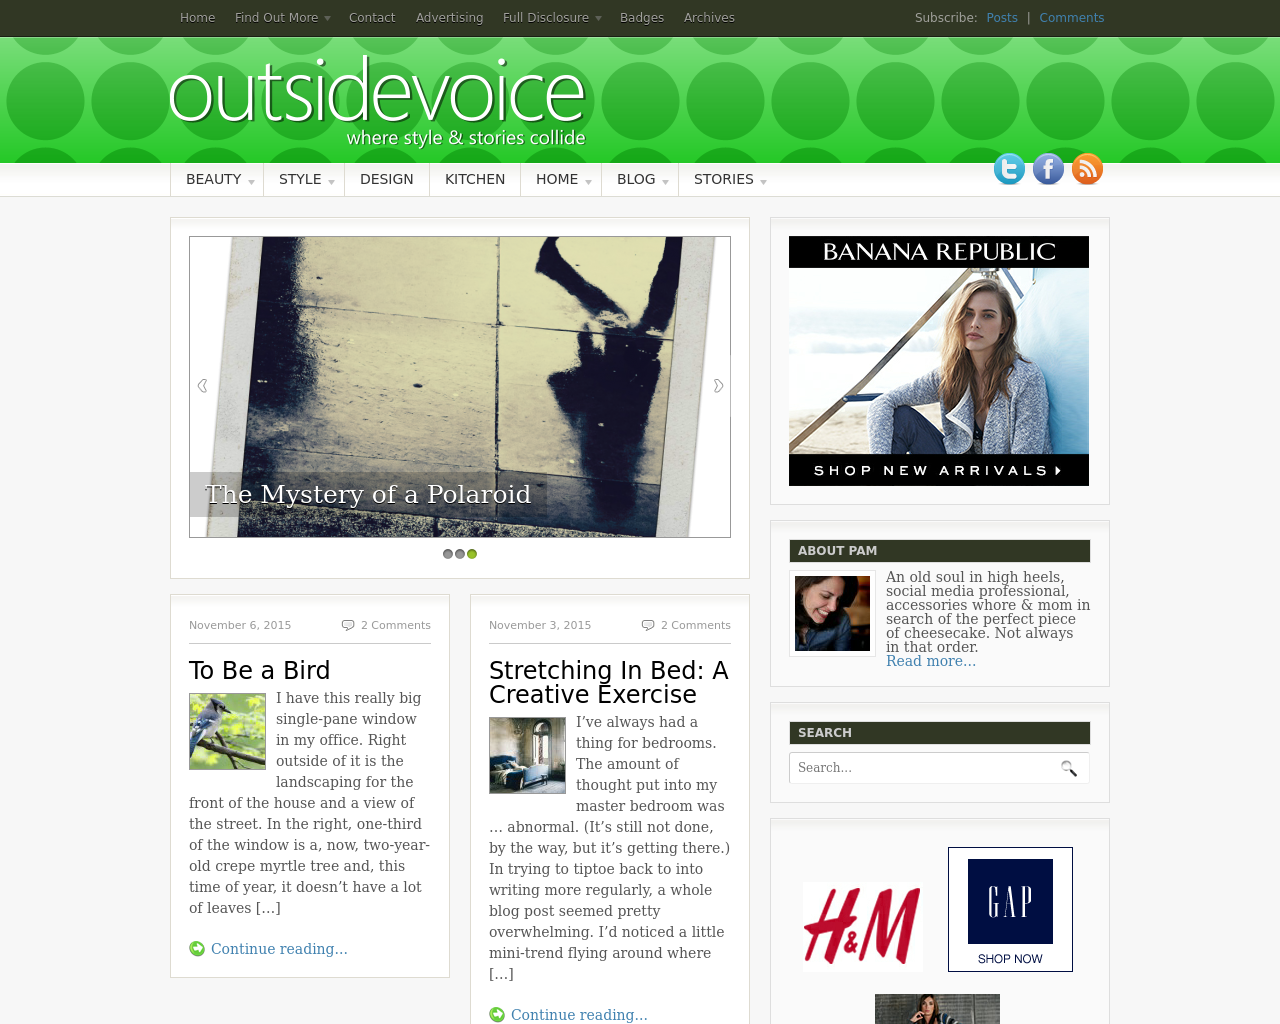 Outsidevoice-Advertising-Reviews-Pricing